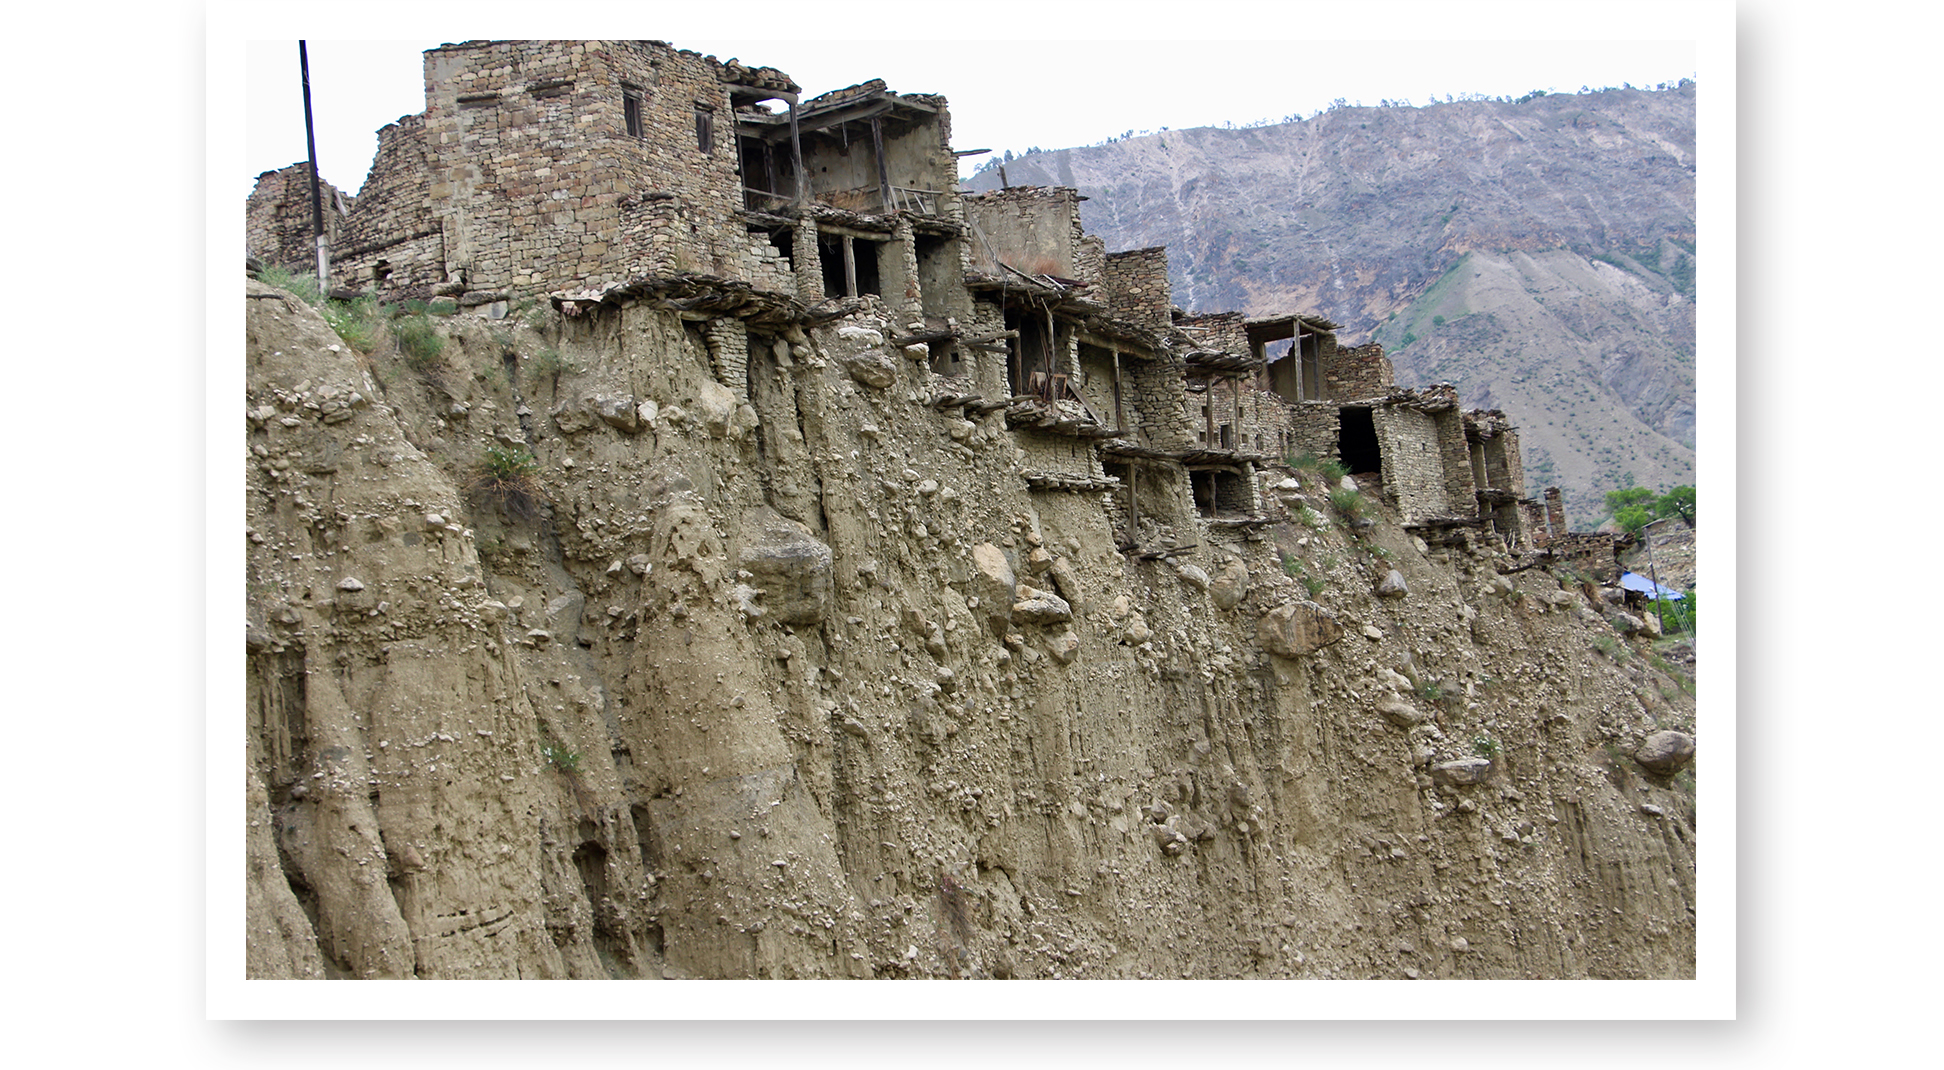 """Circumnavigator Albert Podell, author and adventurer, traveled really far off the beaten track to visit northern Caucasus. An 85-year-old woman is the last inhabitant of this crumbling village he found along the way. Albert's """"white-knuckle"""" adventure will be featured in the next issue of The Log."""